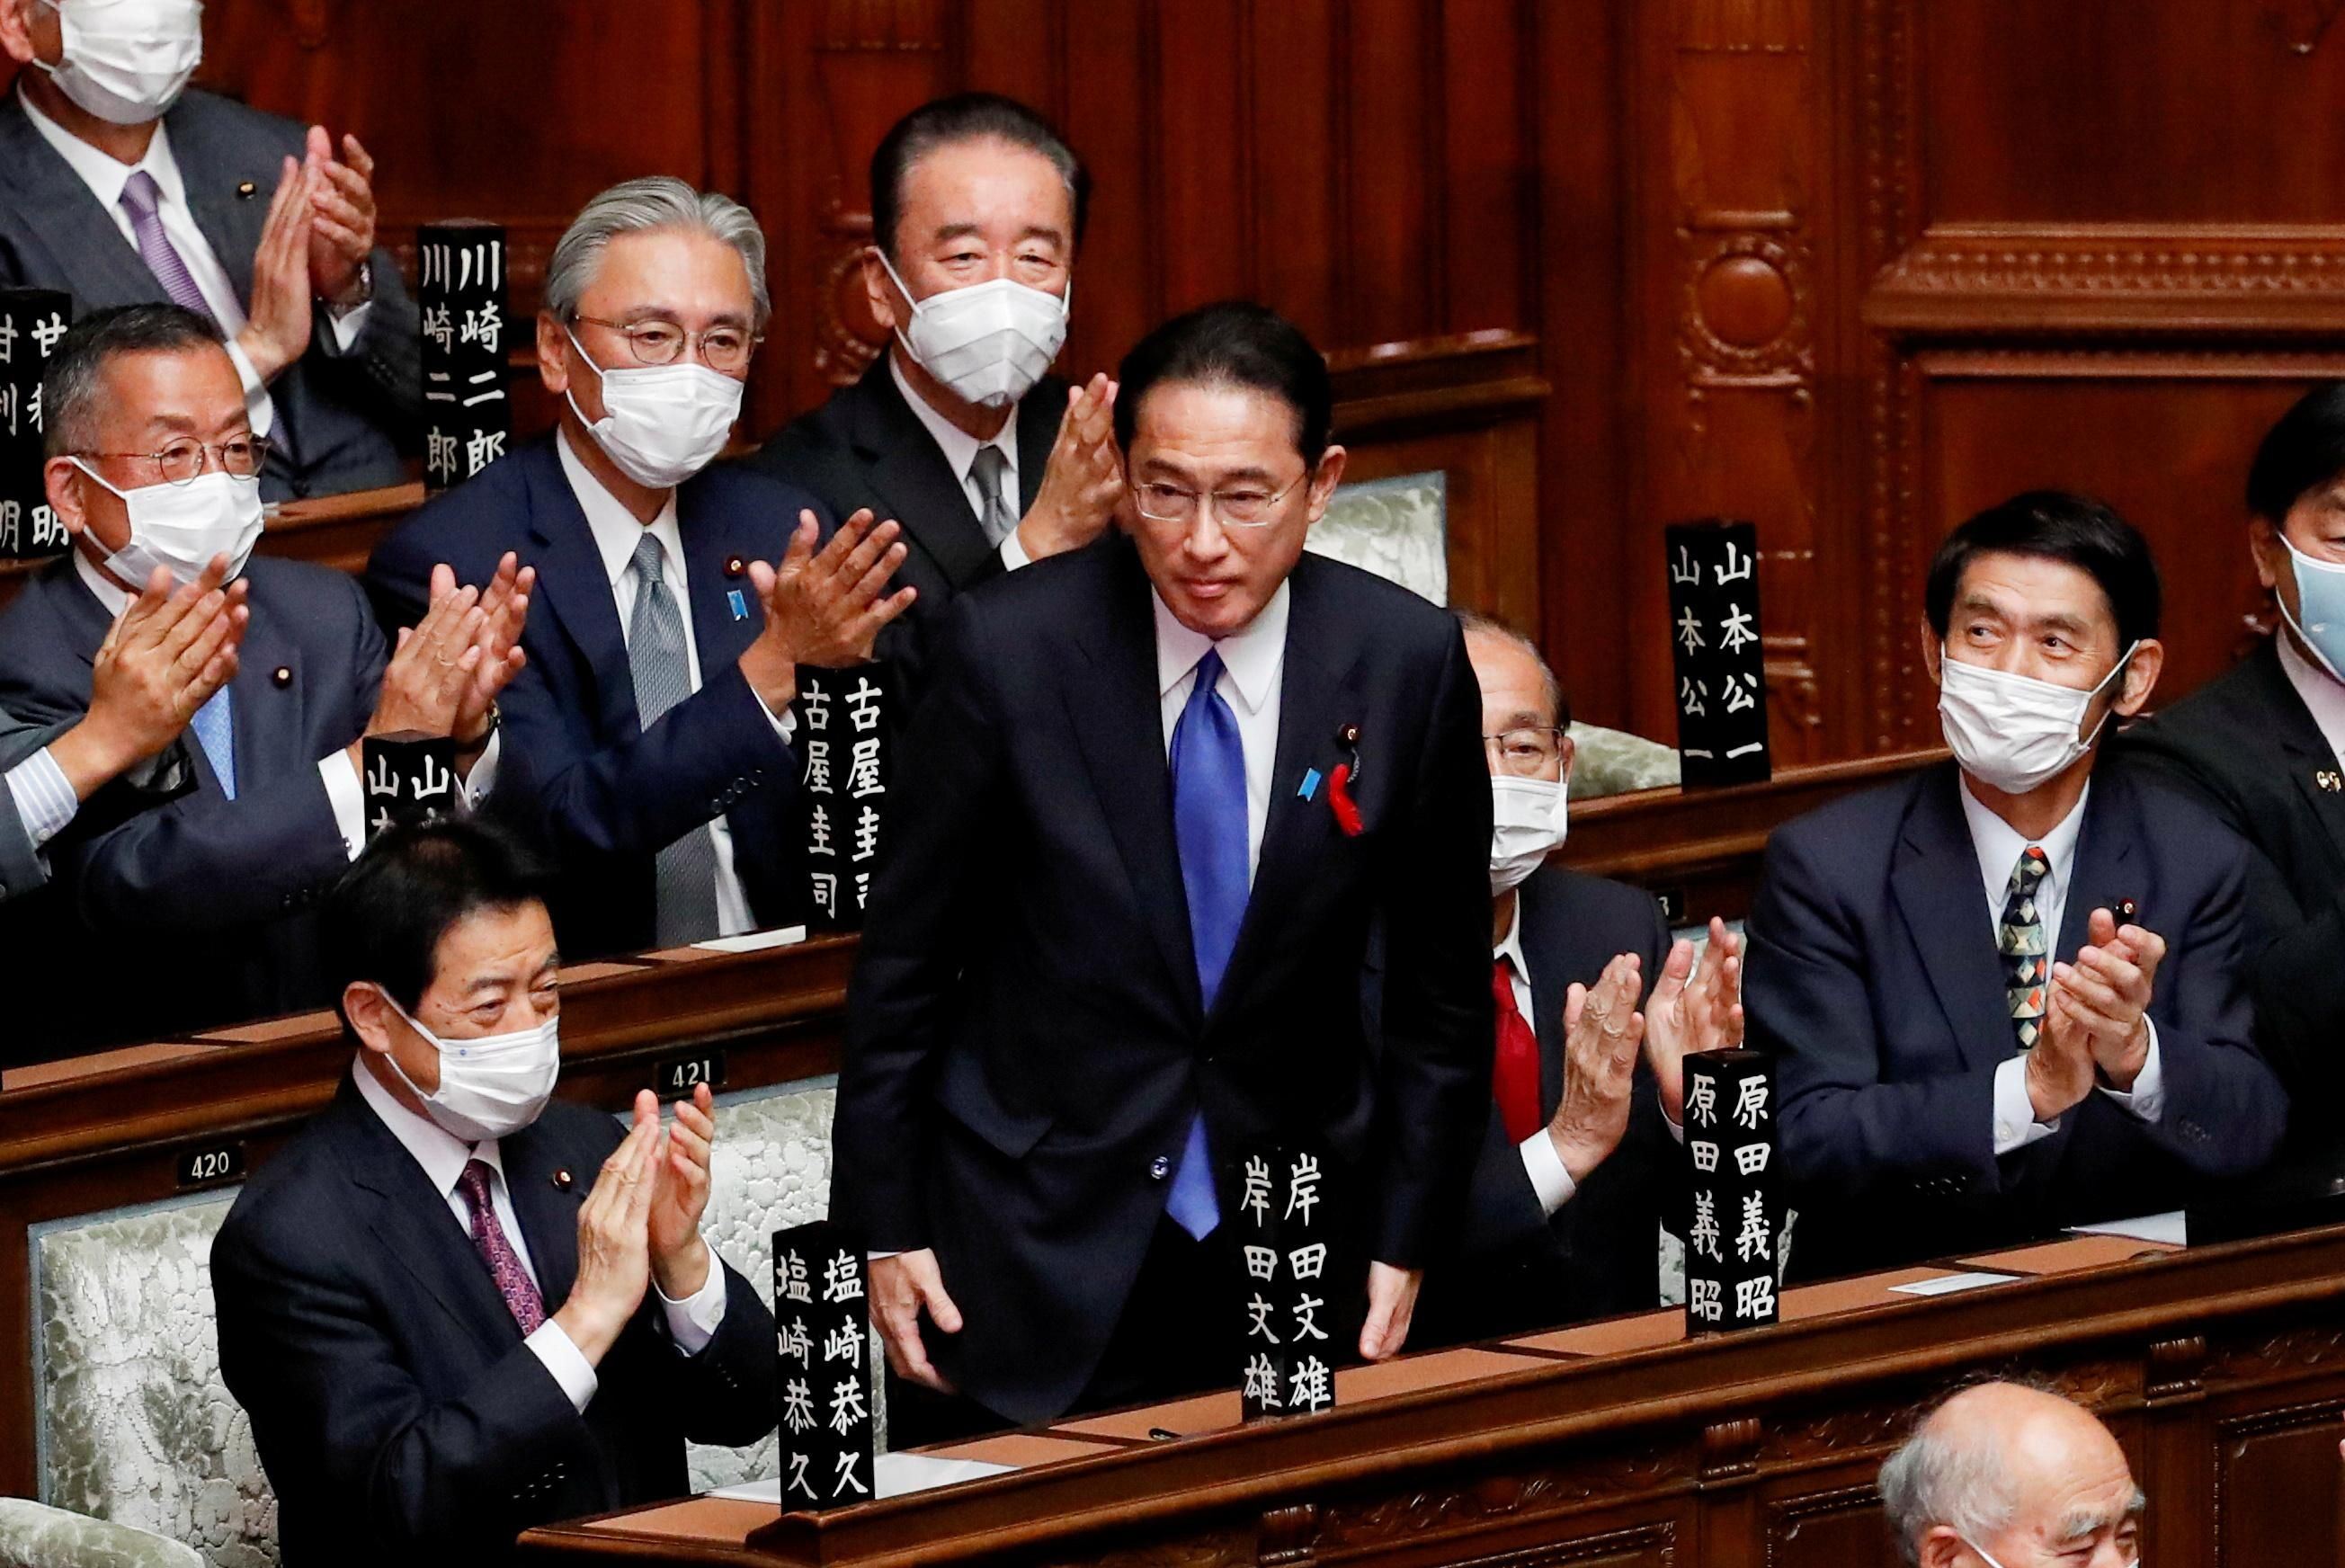 Japan's newly-elected Prime Minister Fumio Kishida is applauded after being chosen as the new prime minister, at the Lower House of Parliament in Tokyo, Japan October 4, 2021.